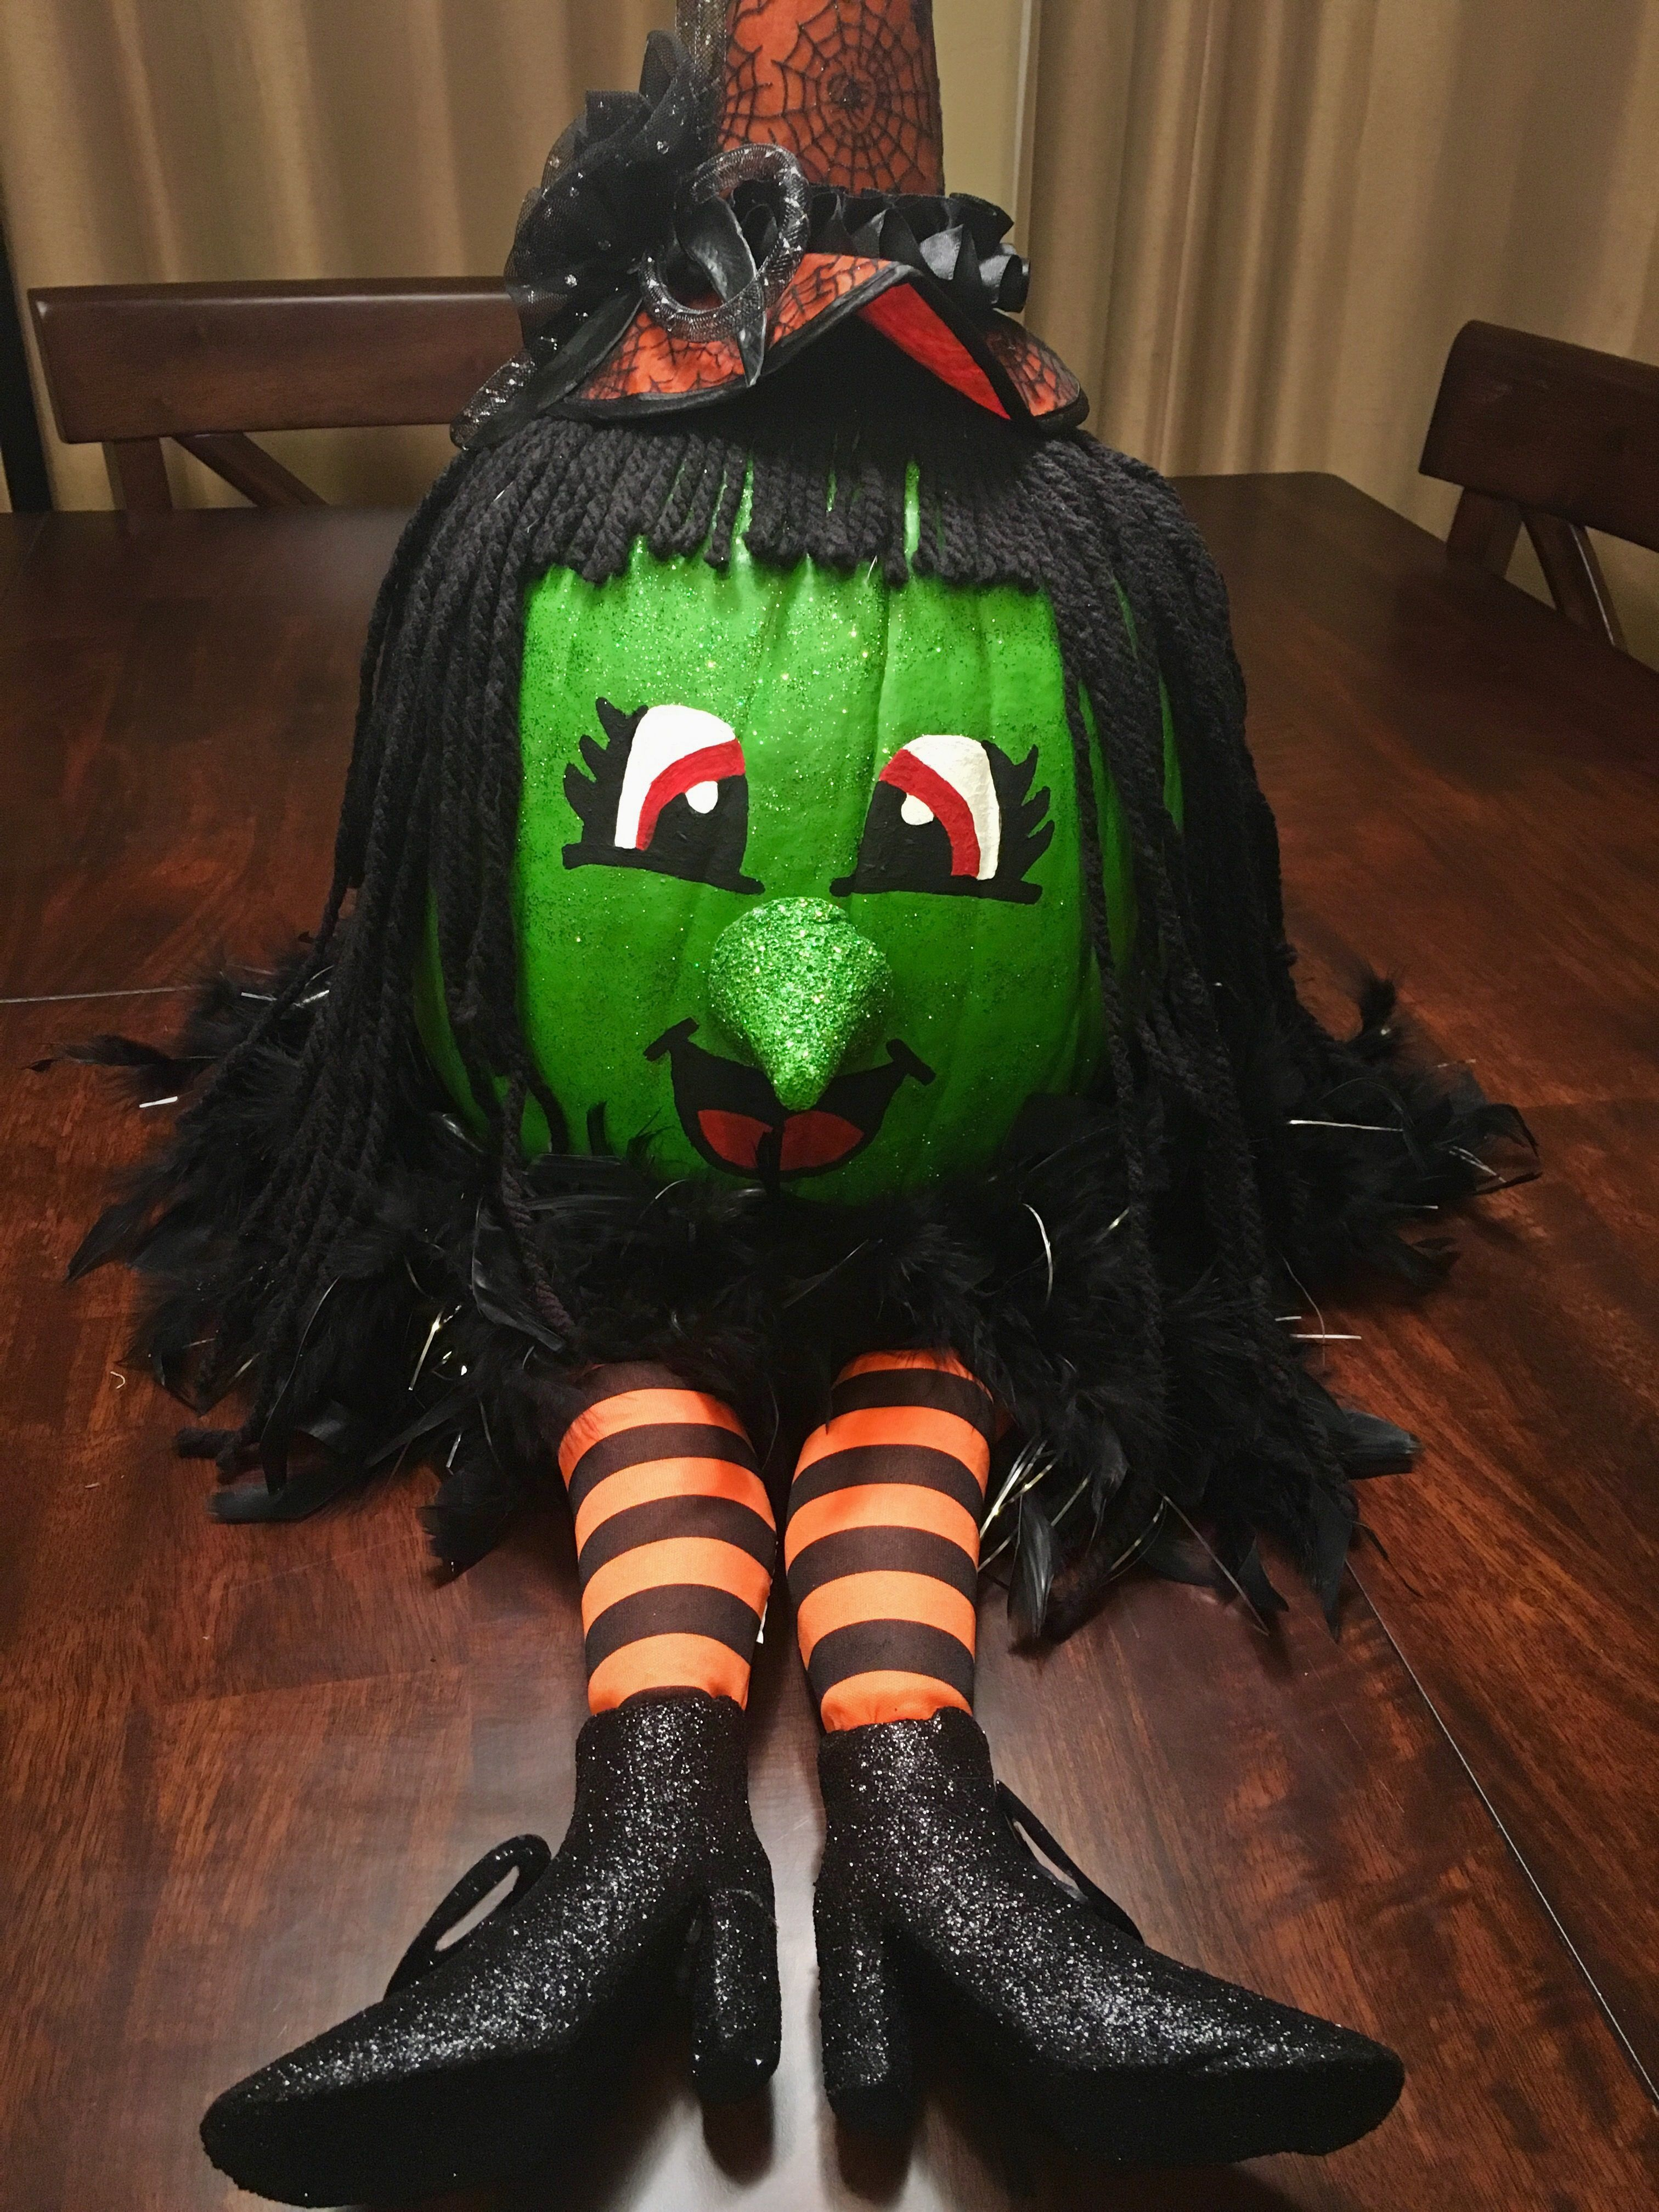 Pin By Nicole Falcon Boswell On Dress Up Costumes Halloween Pumpkins Painted Pumpkin Halloween Decorations Pumpkin Witch Face